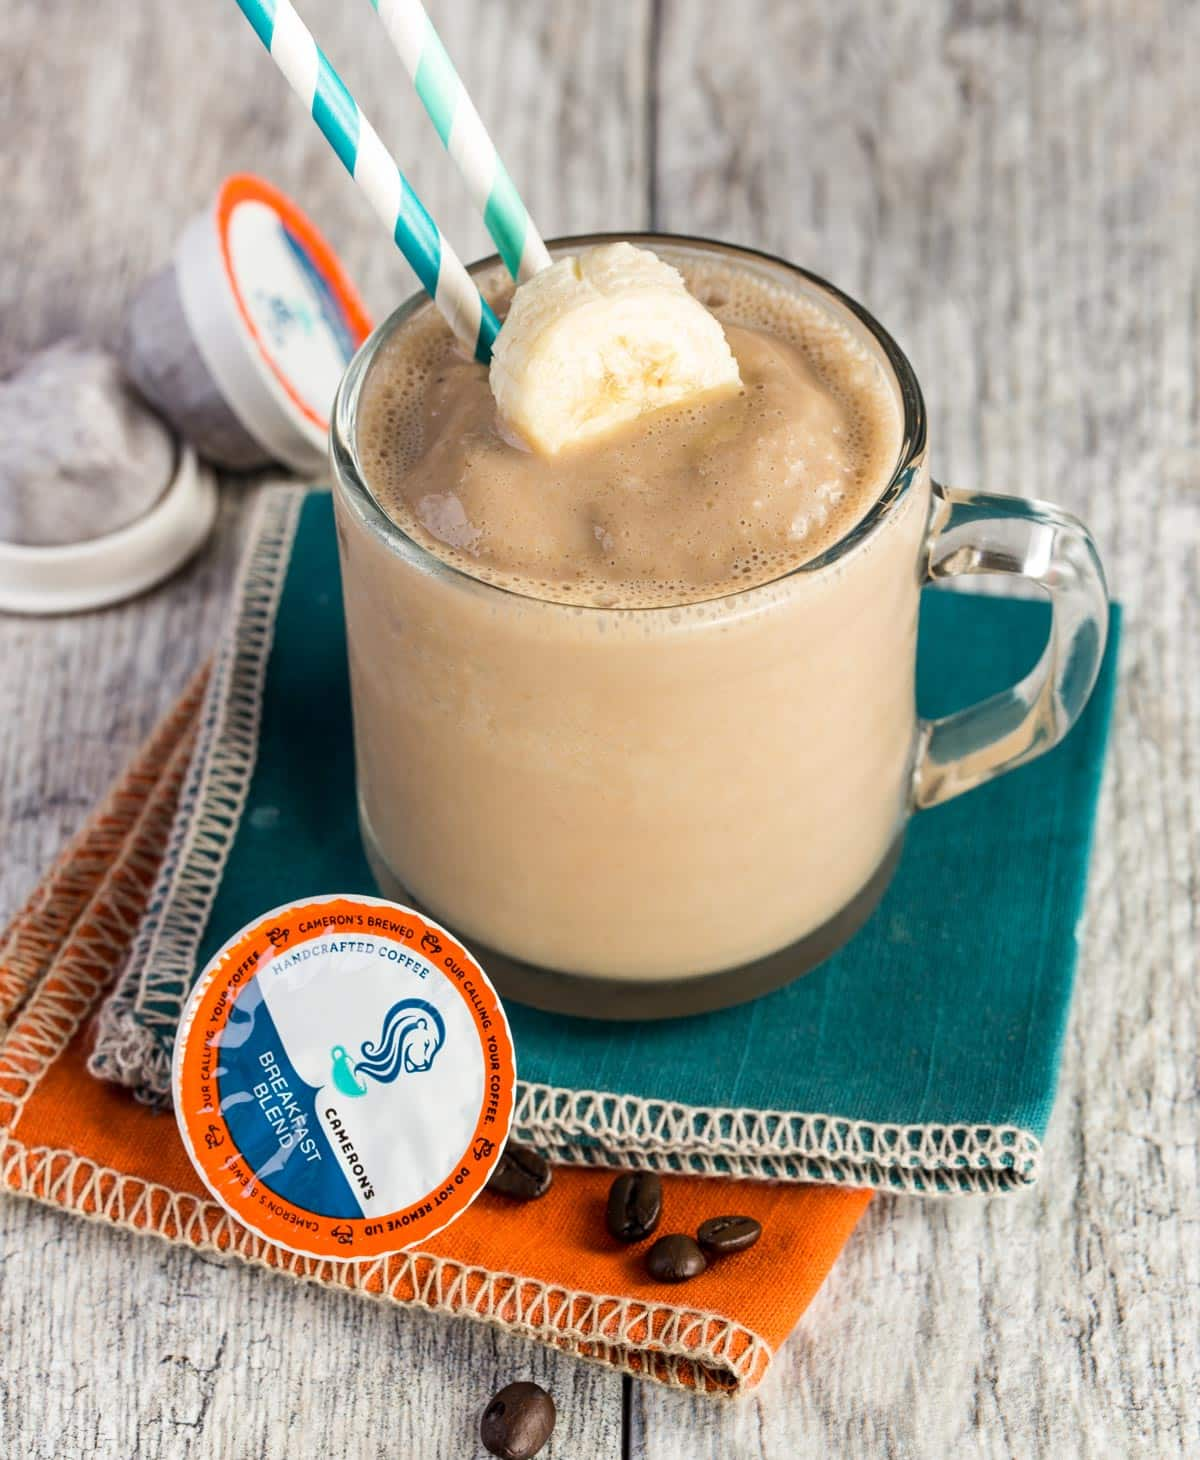 Packed with protein and full of coffee flavor, this Easy Coffee Smoothie recipe makes breakfast a snap.